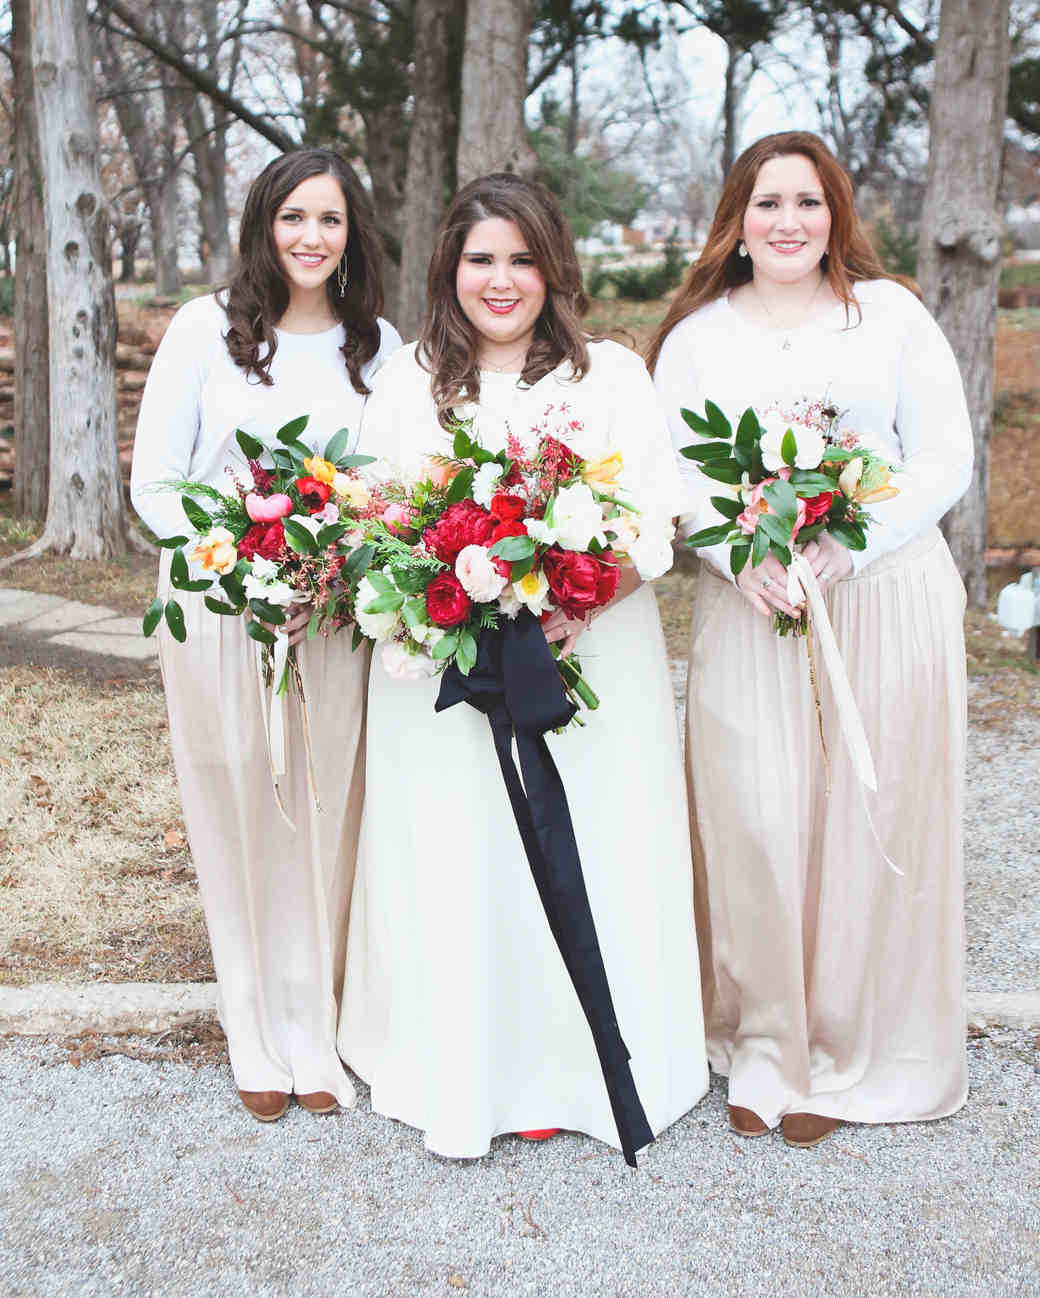 jessie-justin-wedding-bridesmaids-1-s112135-0915.jpg